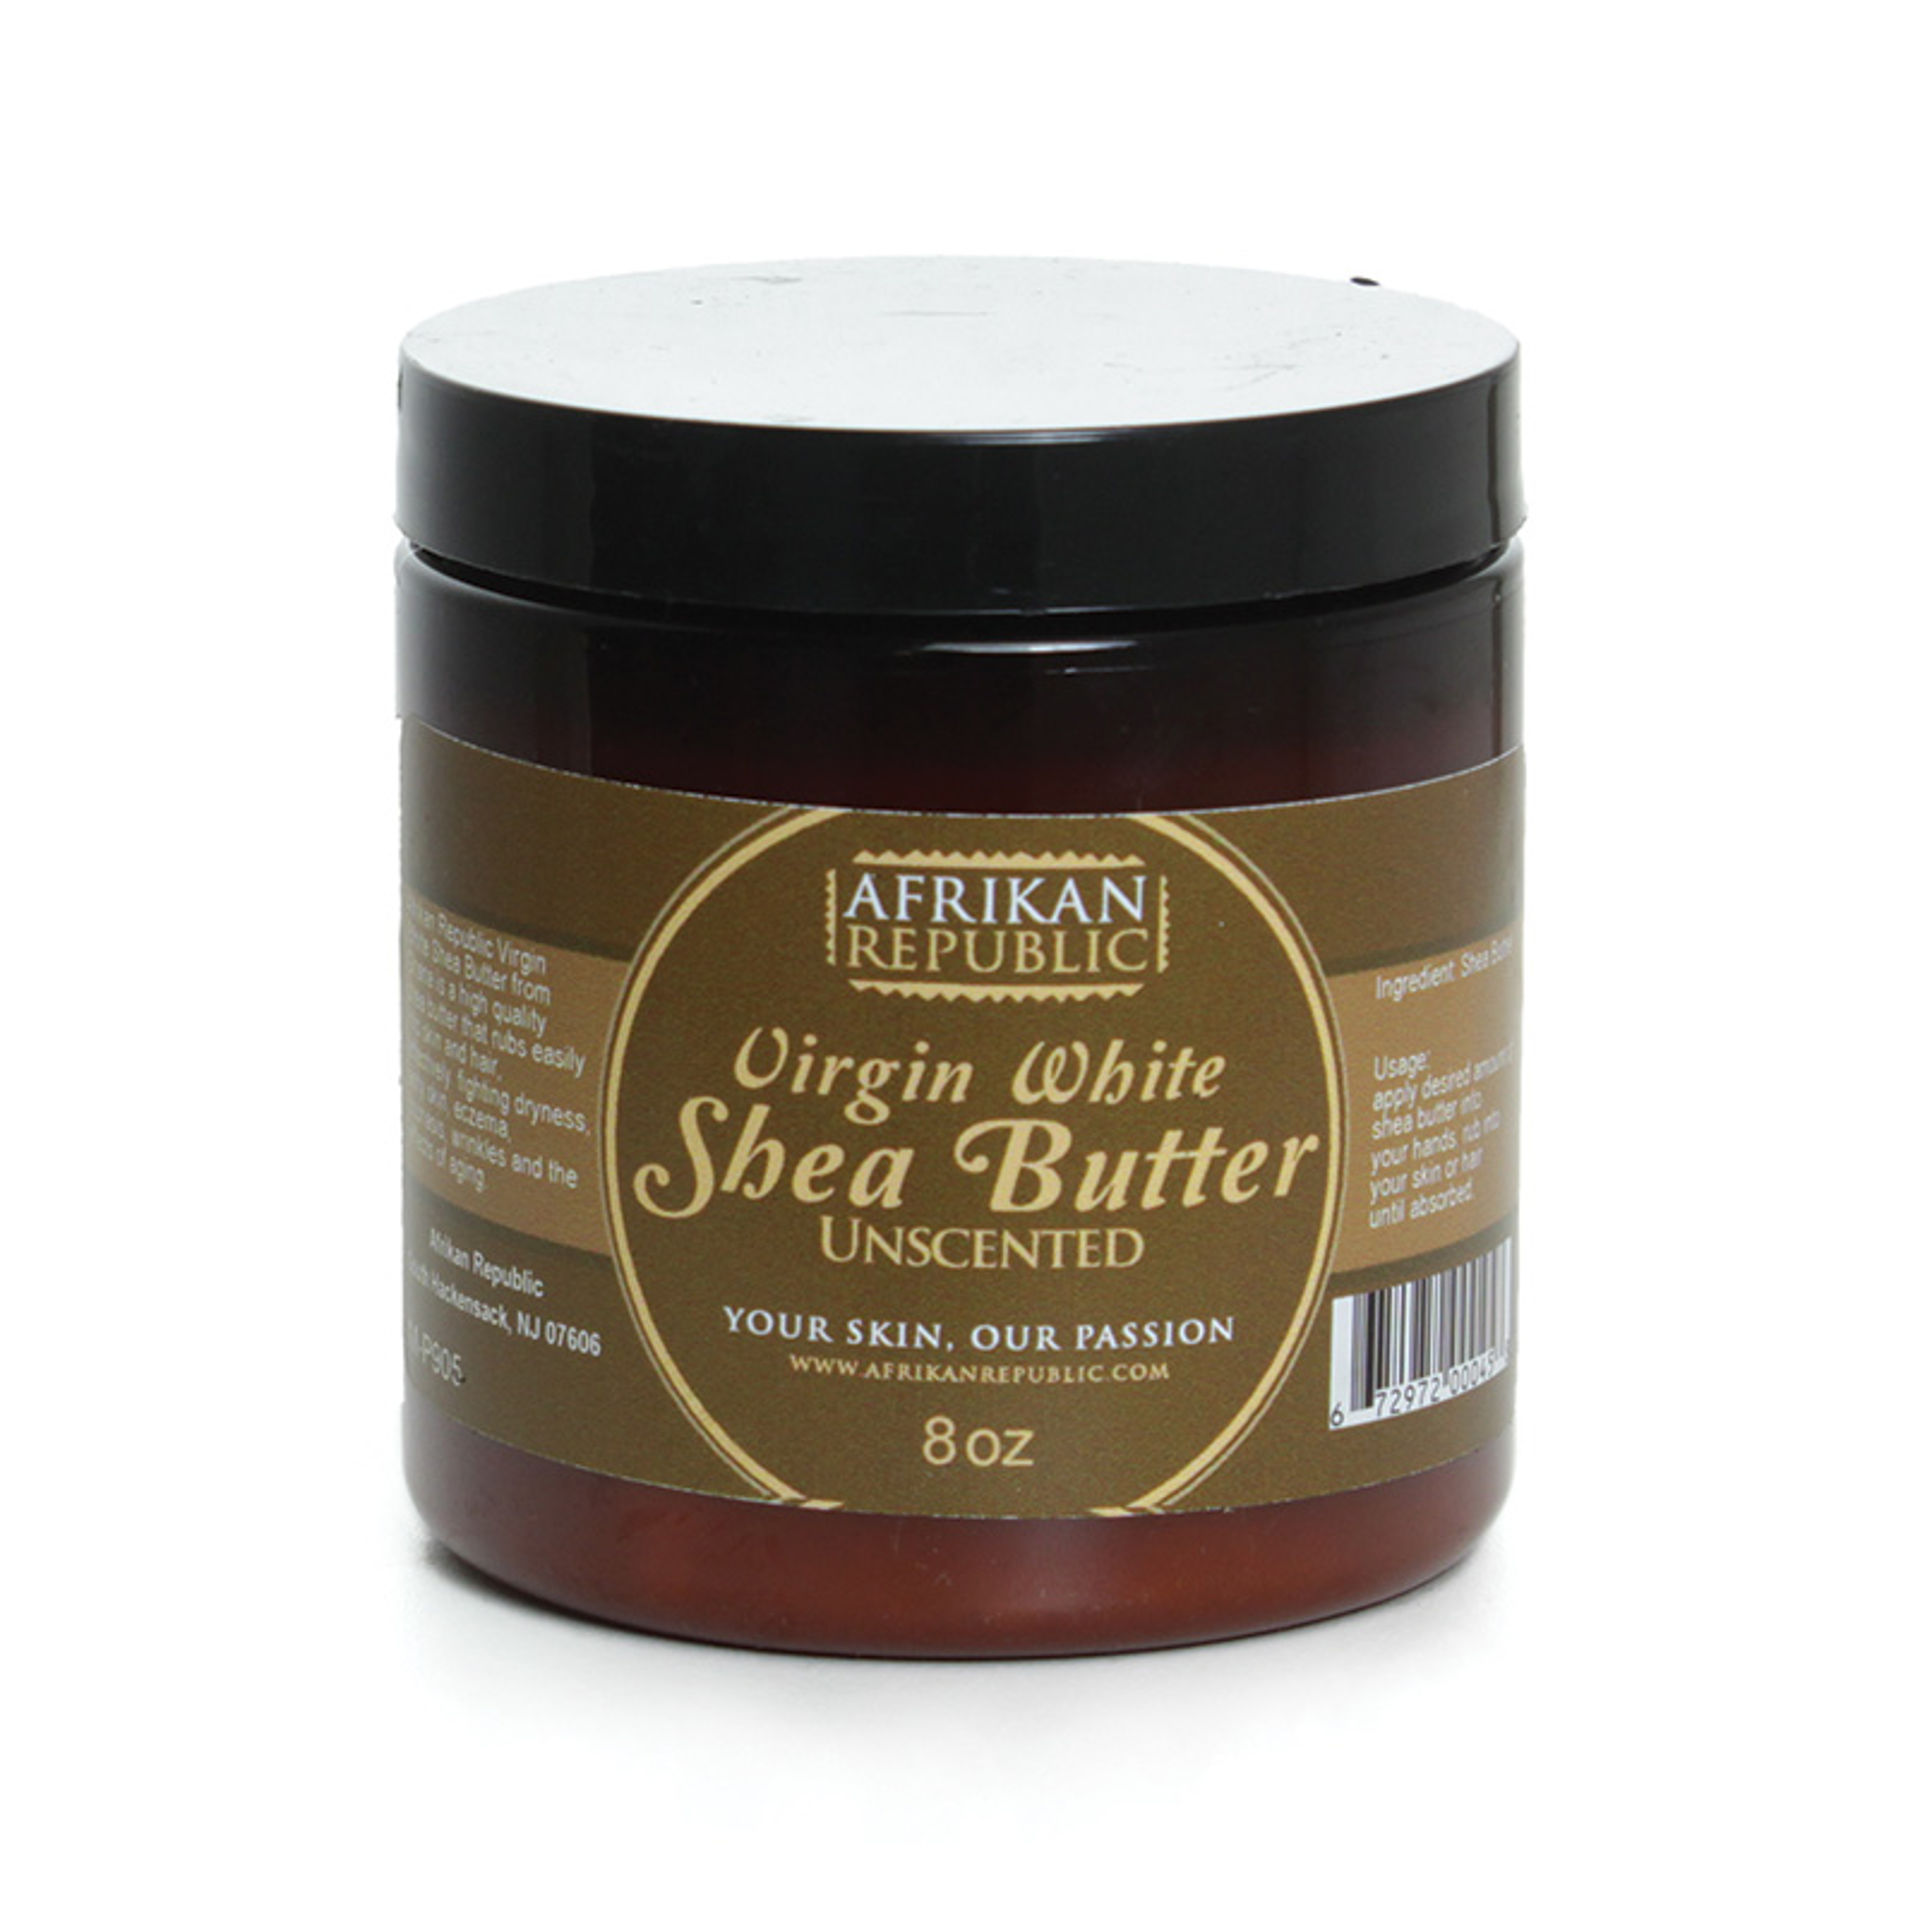 Picture of Virgin White Shea Butter: Unscented